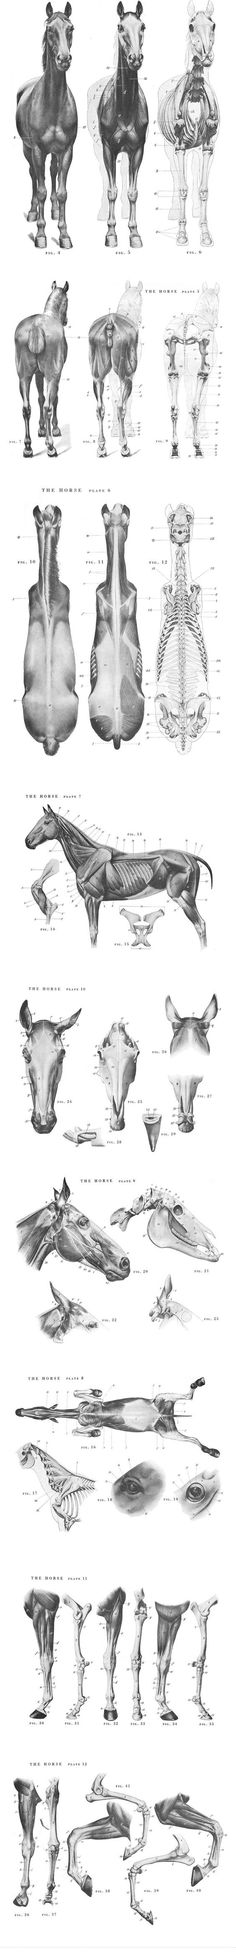 The most complete, accurate and qualified horse anatomy reference seen in all my life, love it Horse Anatomy, Animal Anatomy, Horse Drawings, Animal Drawings, Drawing Animals, Horse Sketch, Horse Facts, Poses References, Anatomy Drawing